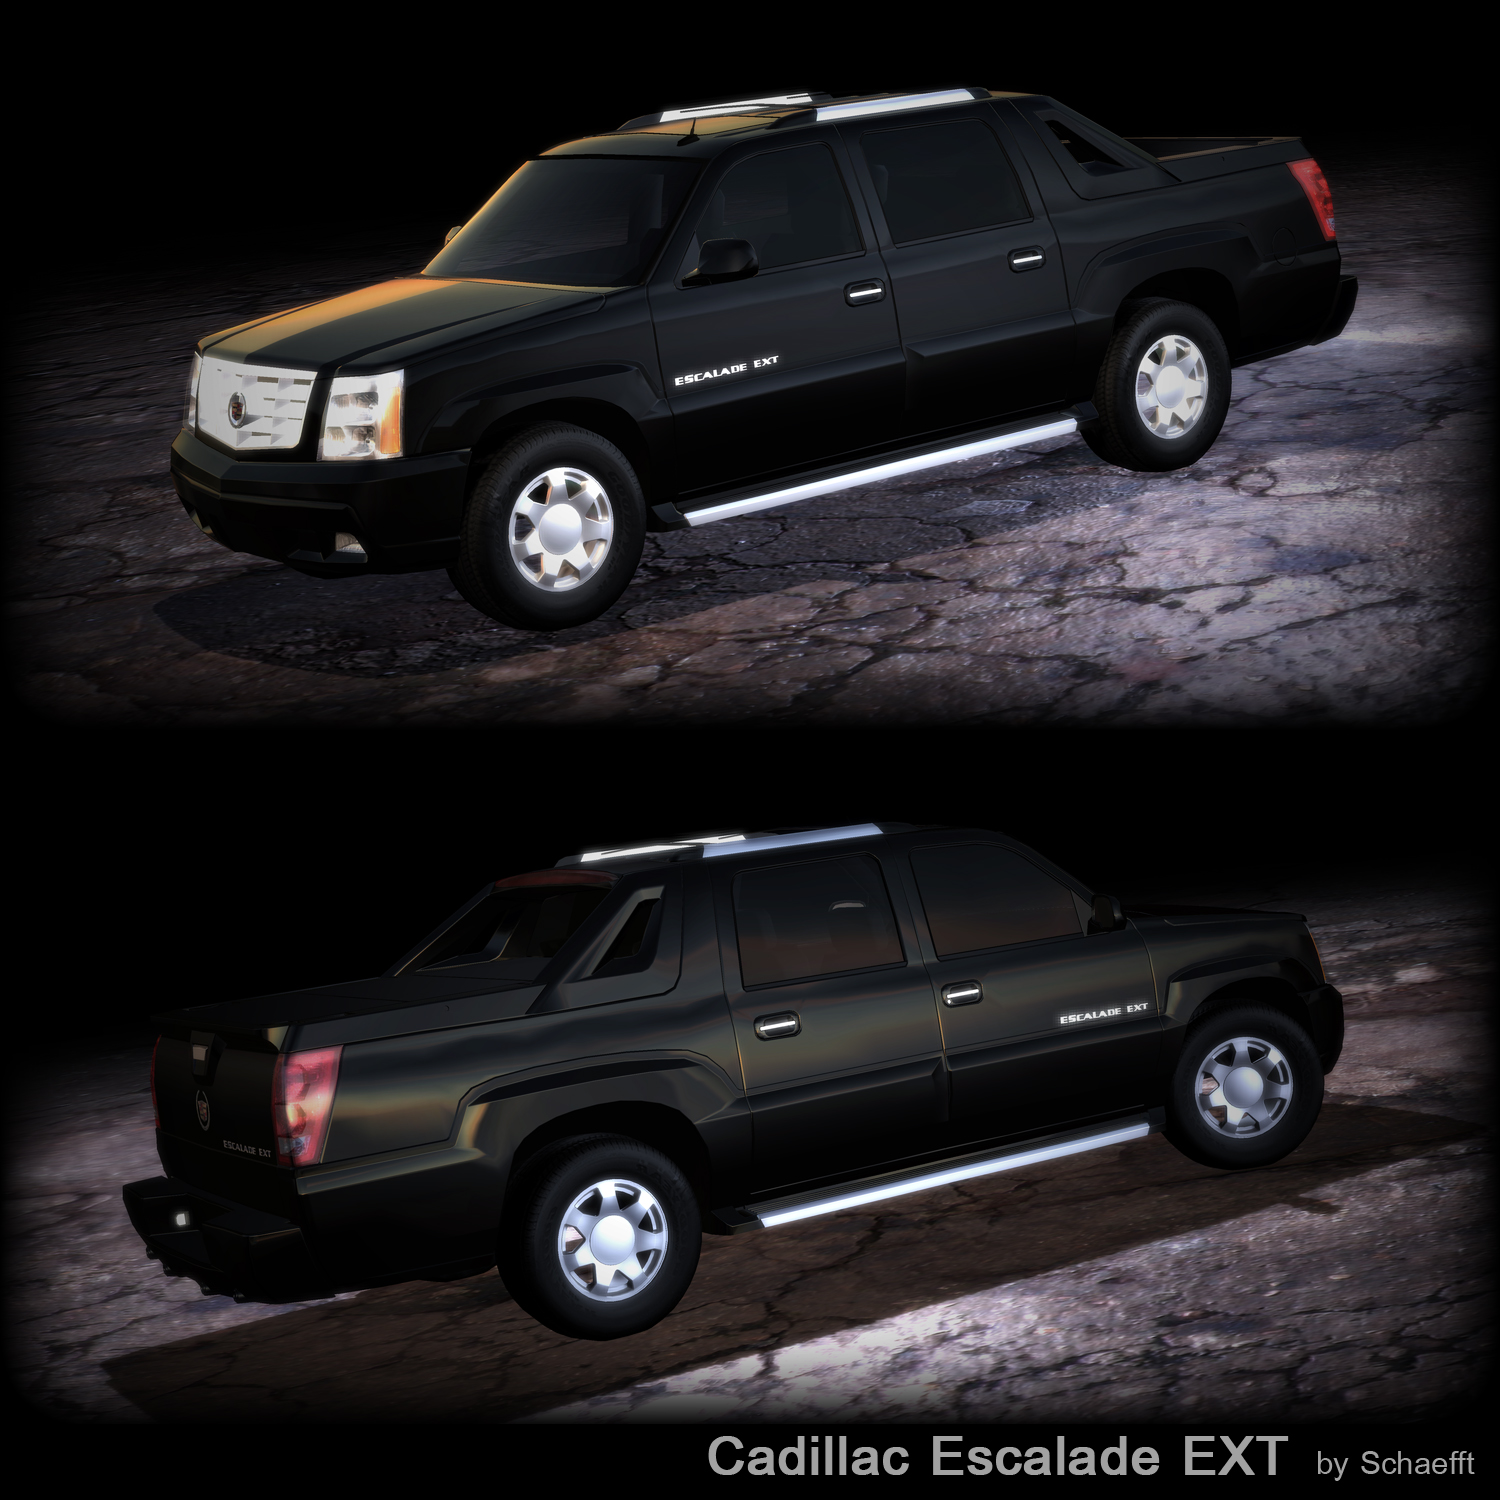 Cadillac Escalade Ext Used: 2003 Cadillac Escalade EXT By Schaefft On DeviantArt